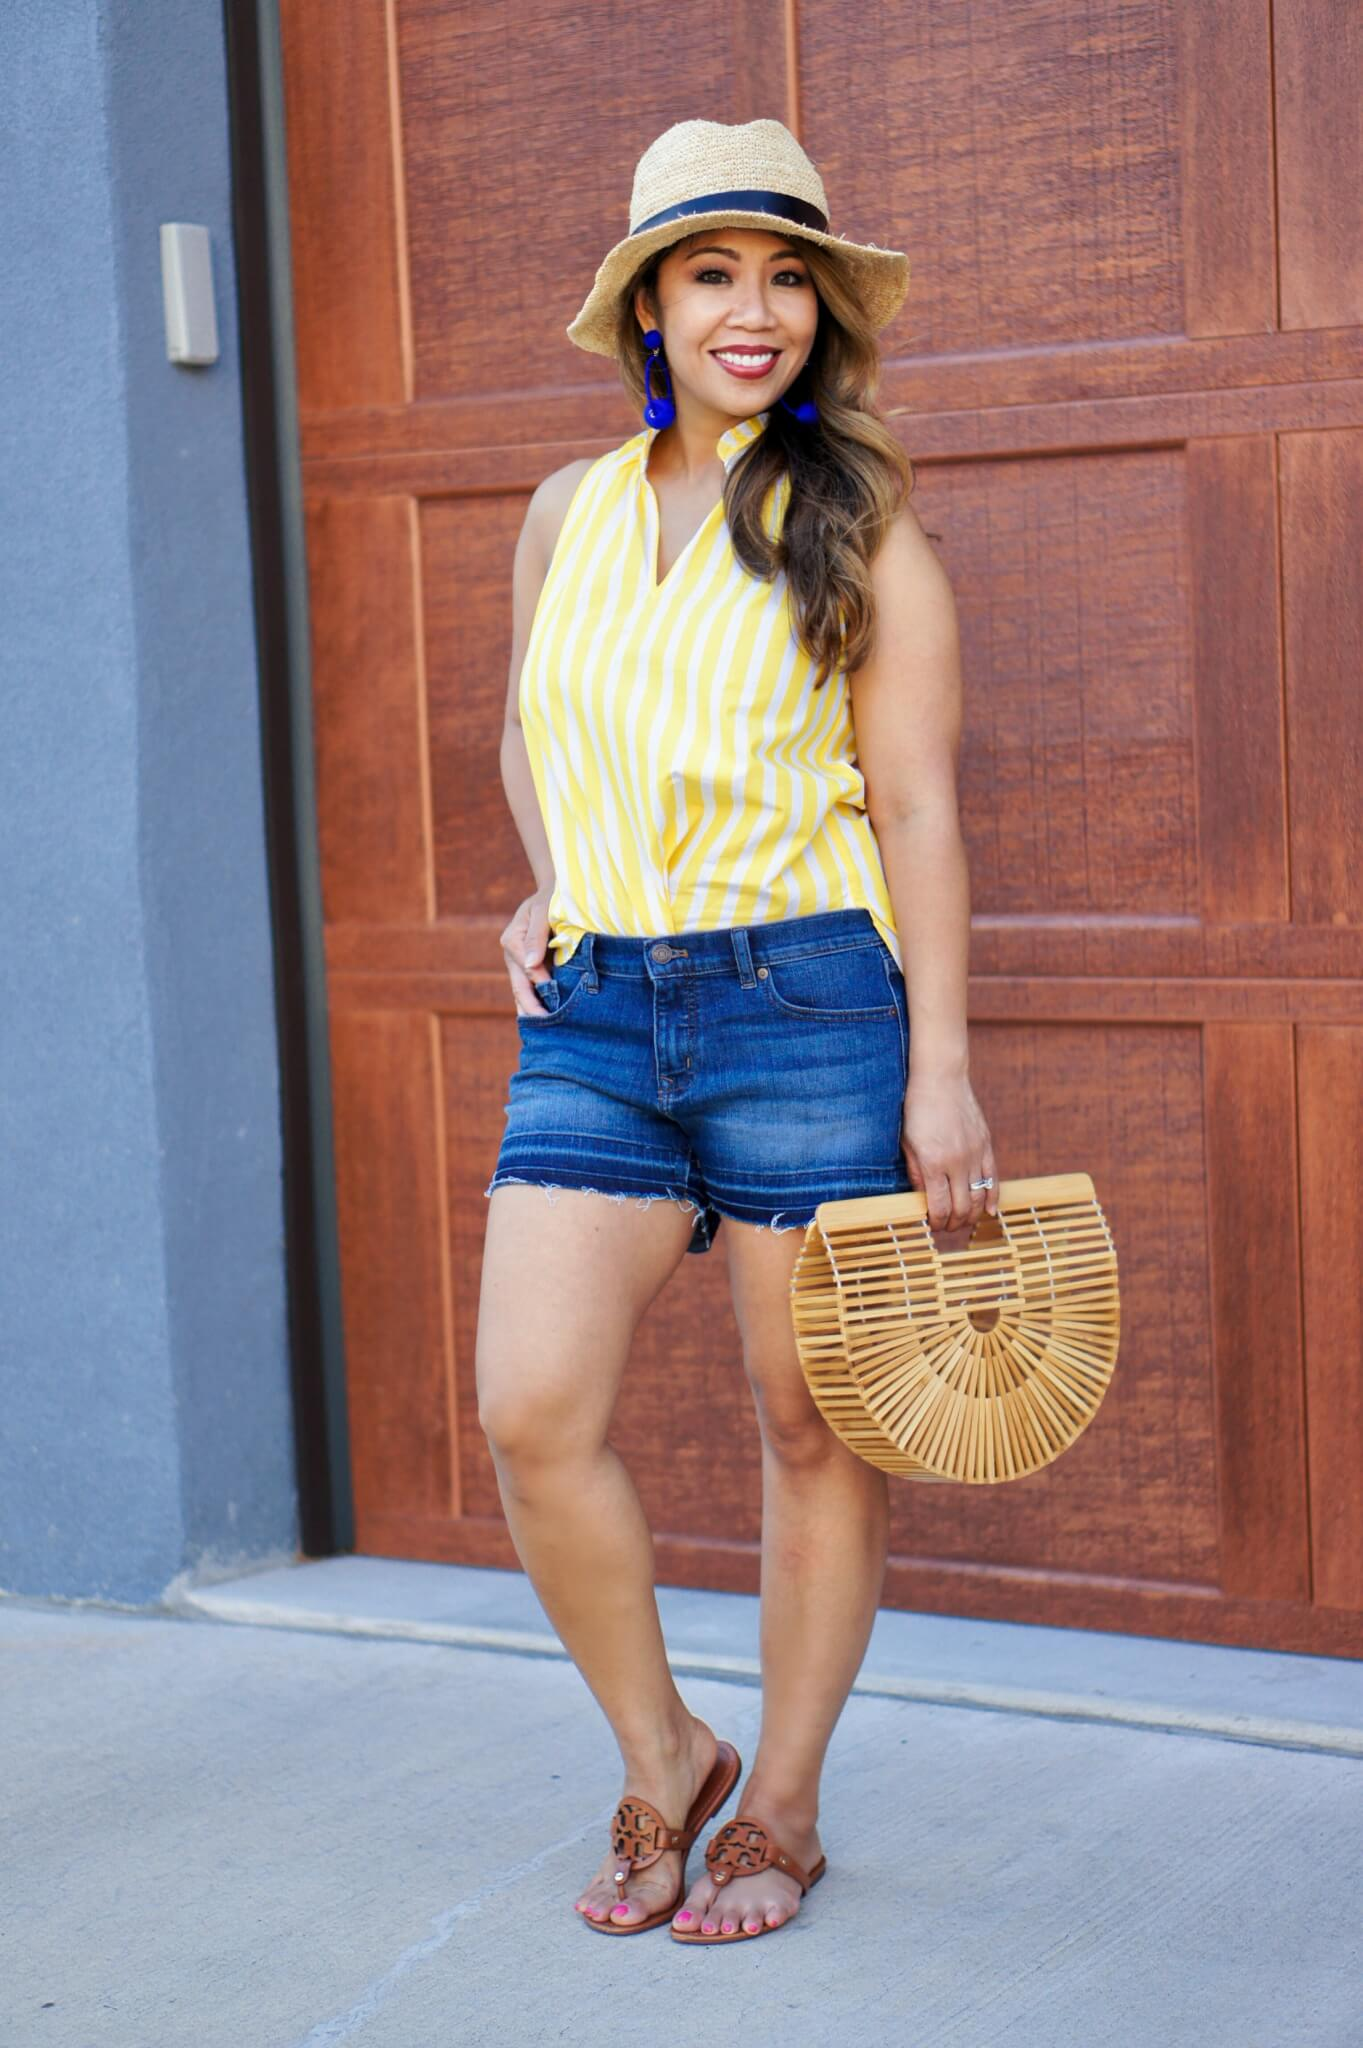 c2a07f8dbe9 Photos by Sanglui. Top by J. Crew. Shorts by Banana Republic. Bag by  Francesca s. Sandals by Tory Burch. Hat by Gap.